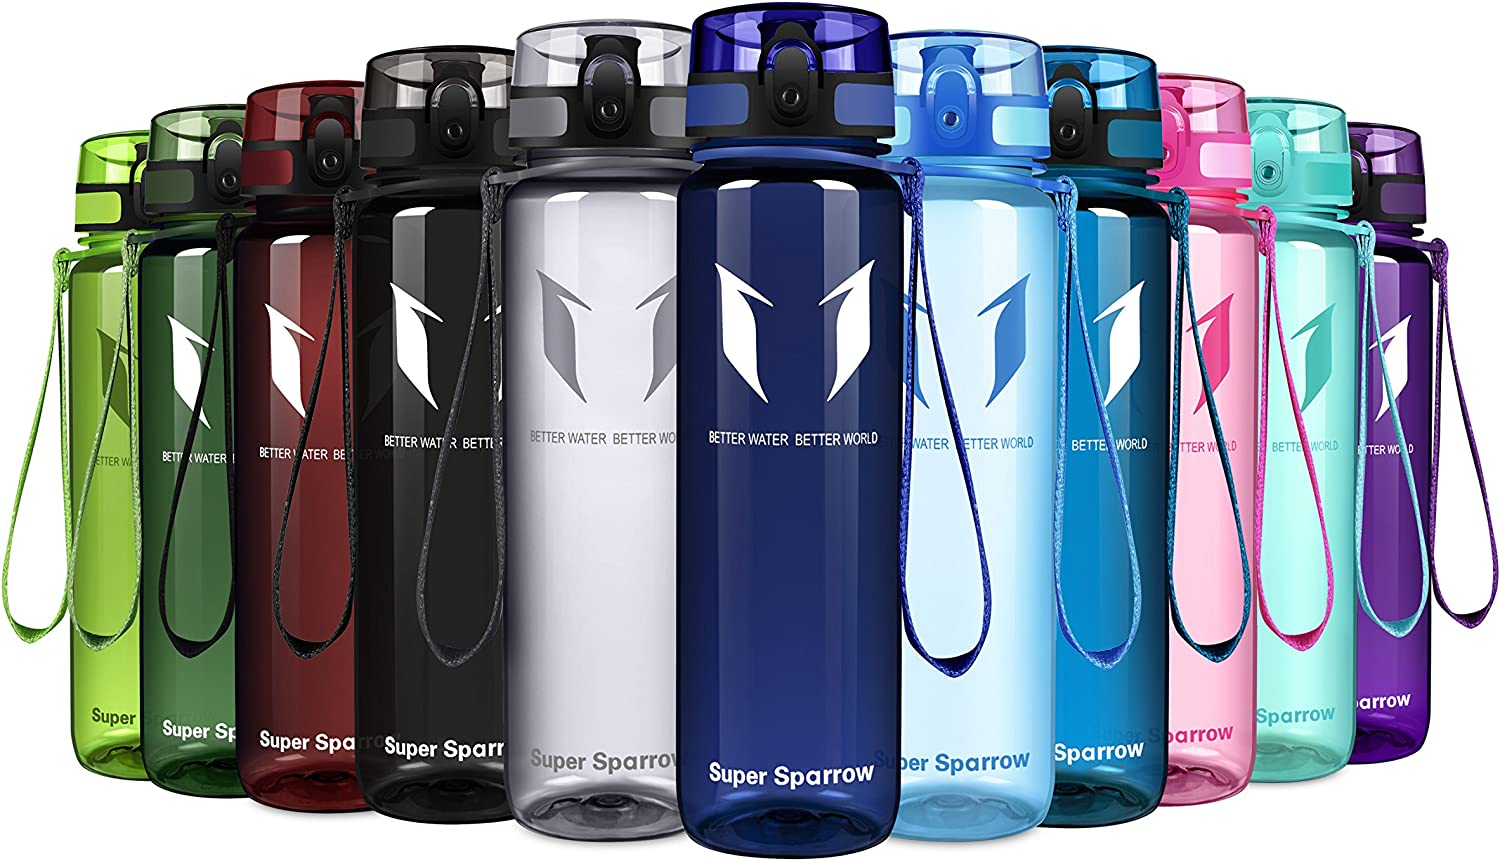 Opens with 1-Click Flip Top Fast Water Flow Super Sparrow Sports Water Bottle Multi-Size BPA Free /& Eco-Friendly Tritan Co-Polyester Plastic